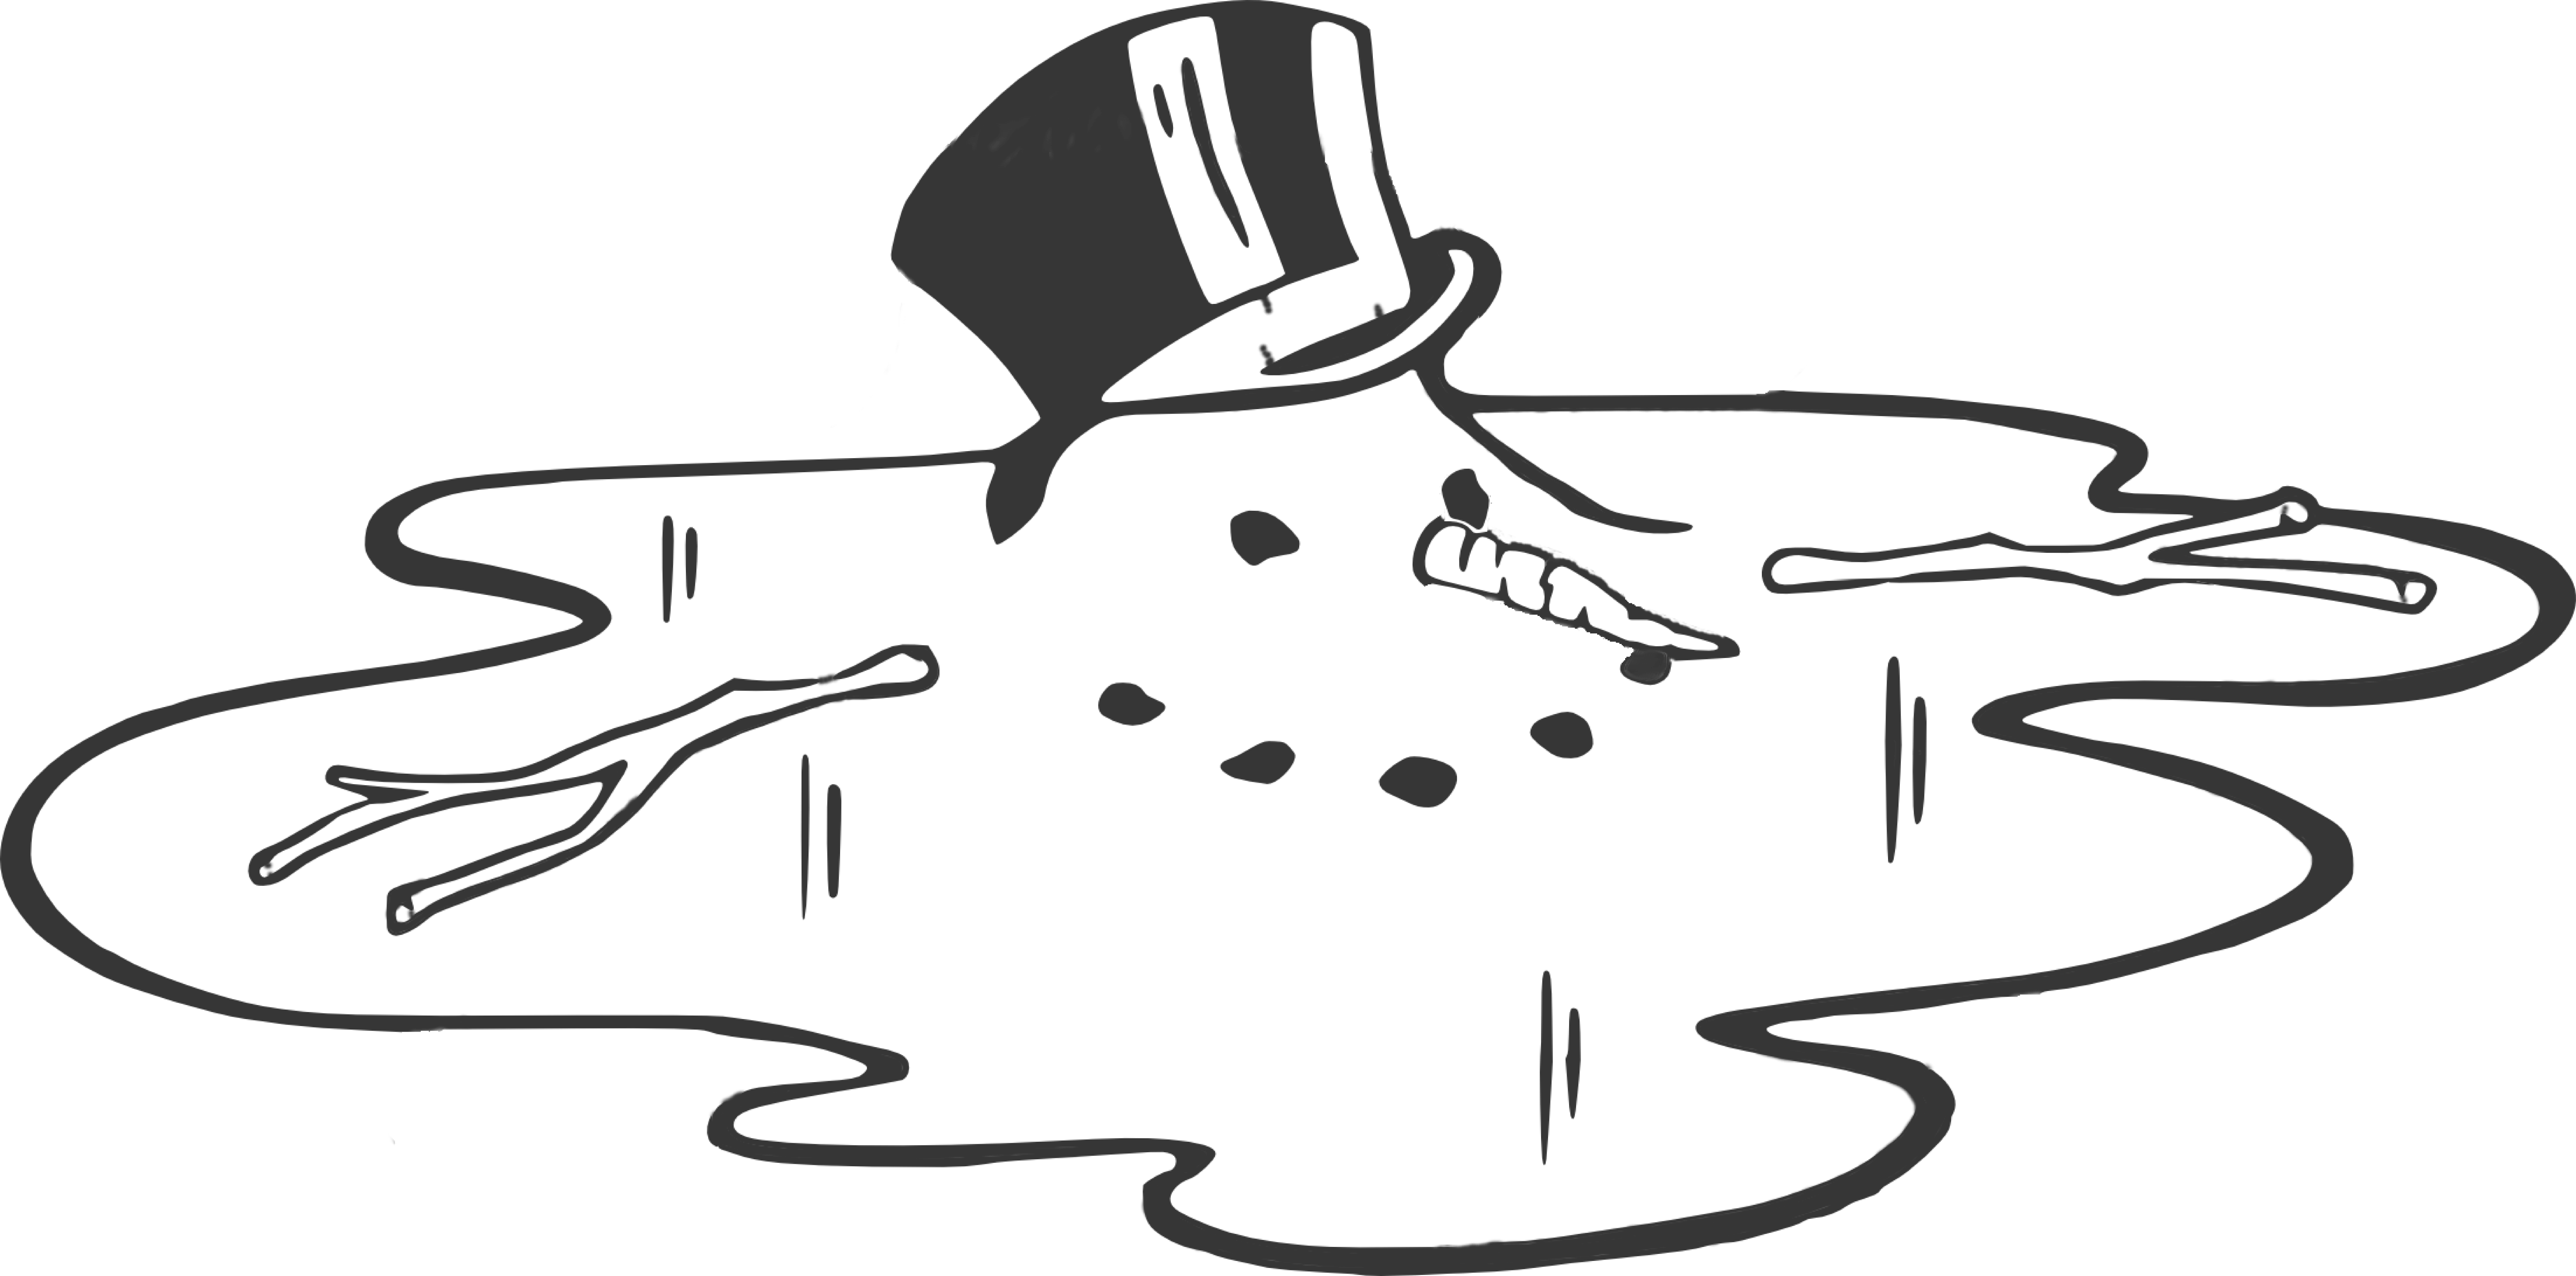 Snowman black and white melting snowman clipart black and white ... graphic stock